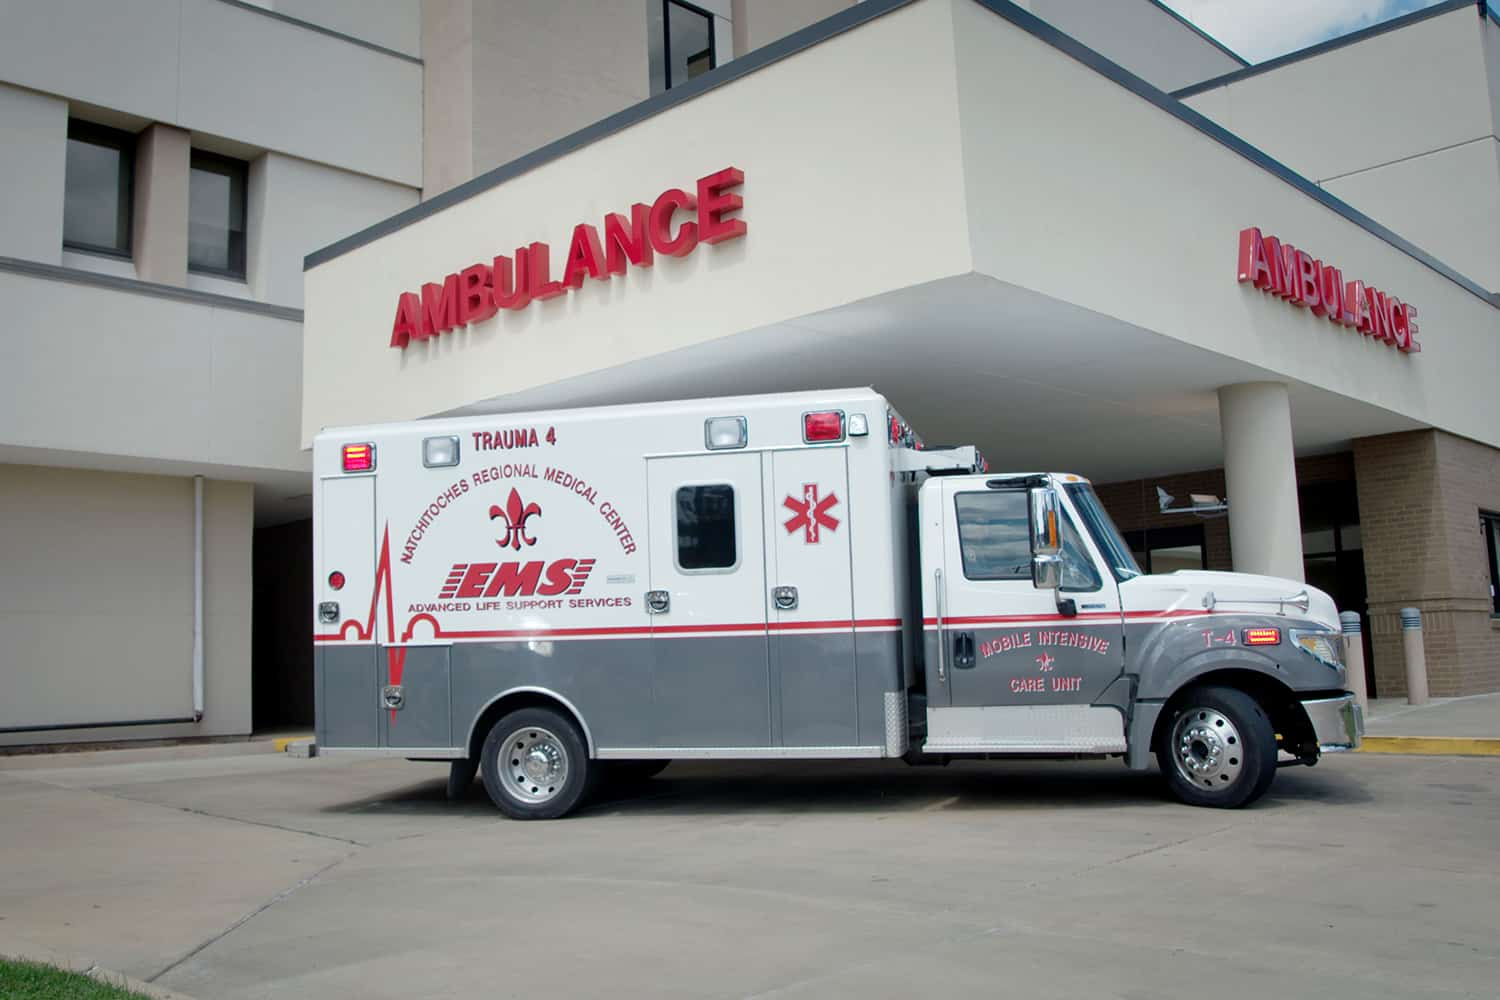 Emergency Services - Ambulance in Natchitoches LA